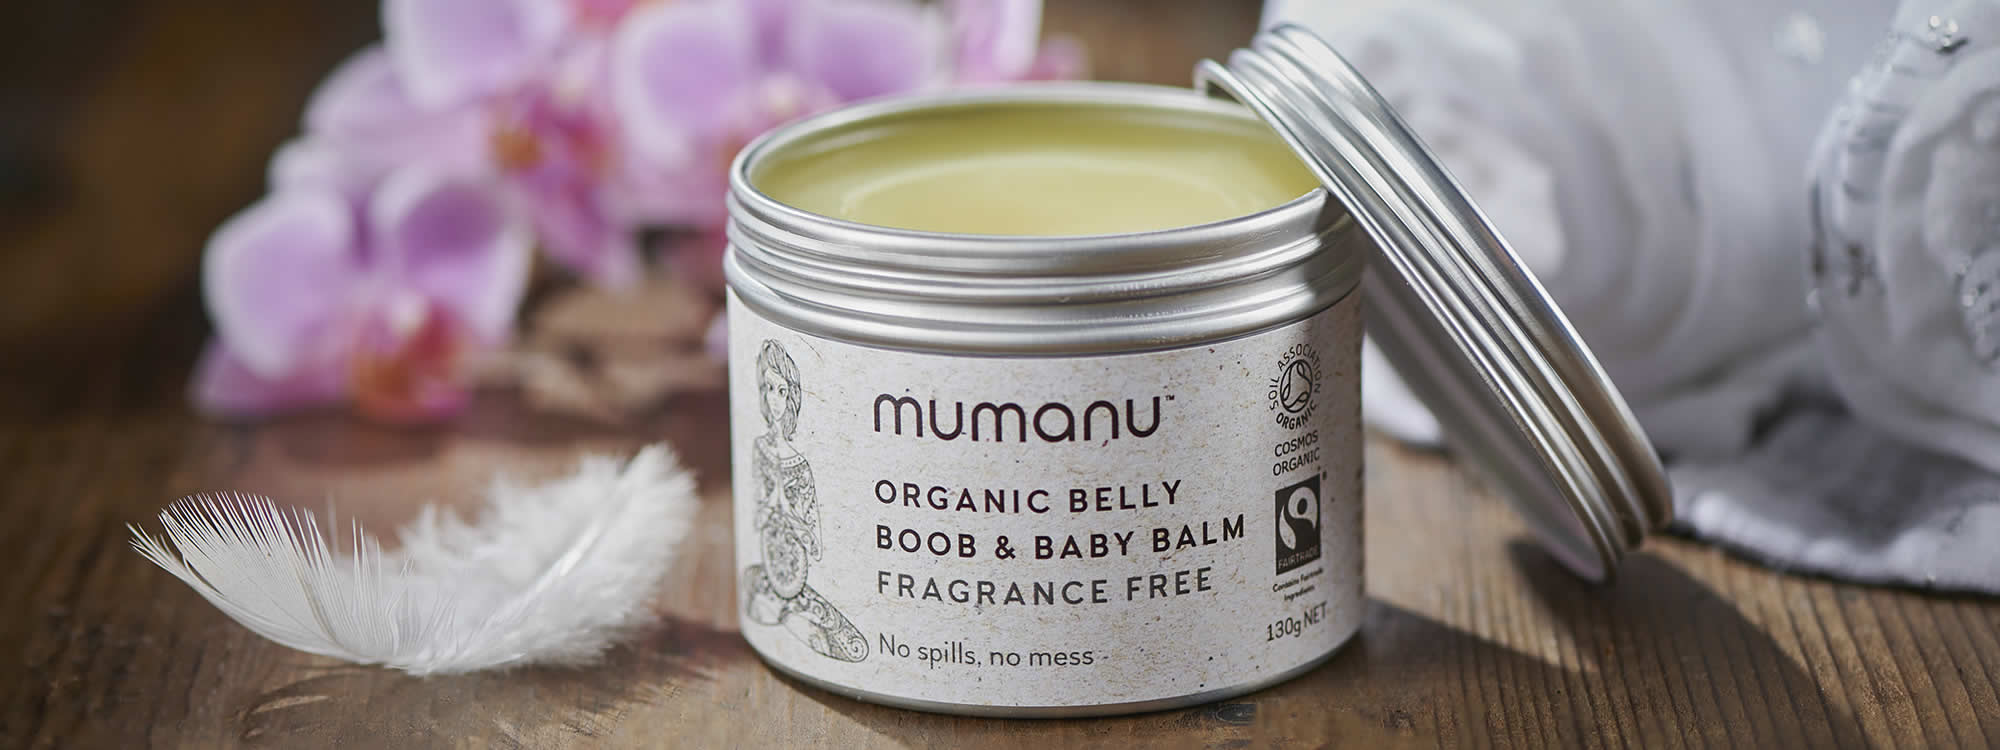 Mumanu Organic Belly, Boob & Baby Balm - Nappy Rash Cream - Cradle Cap Cream - Stretchmark Oil